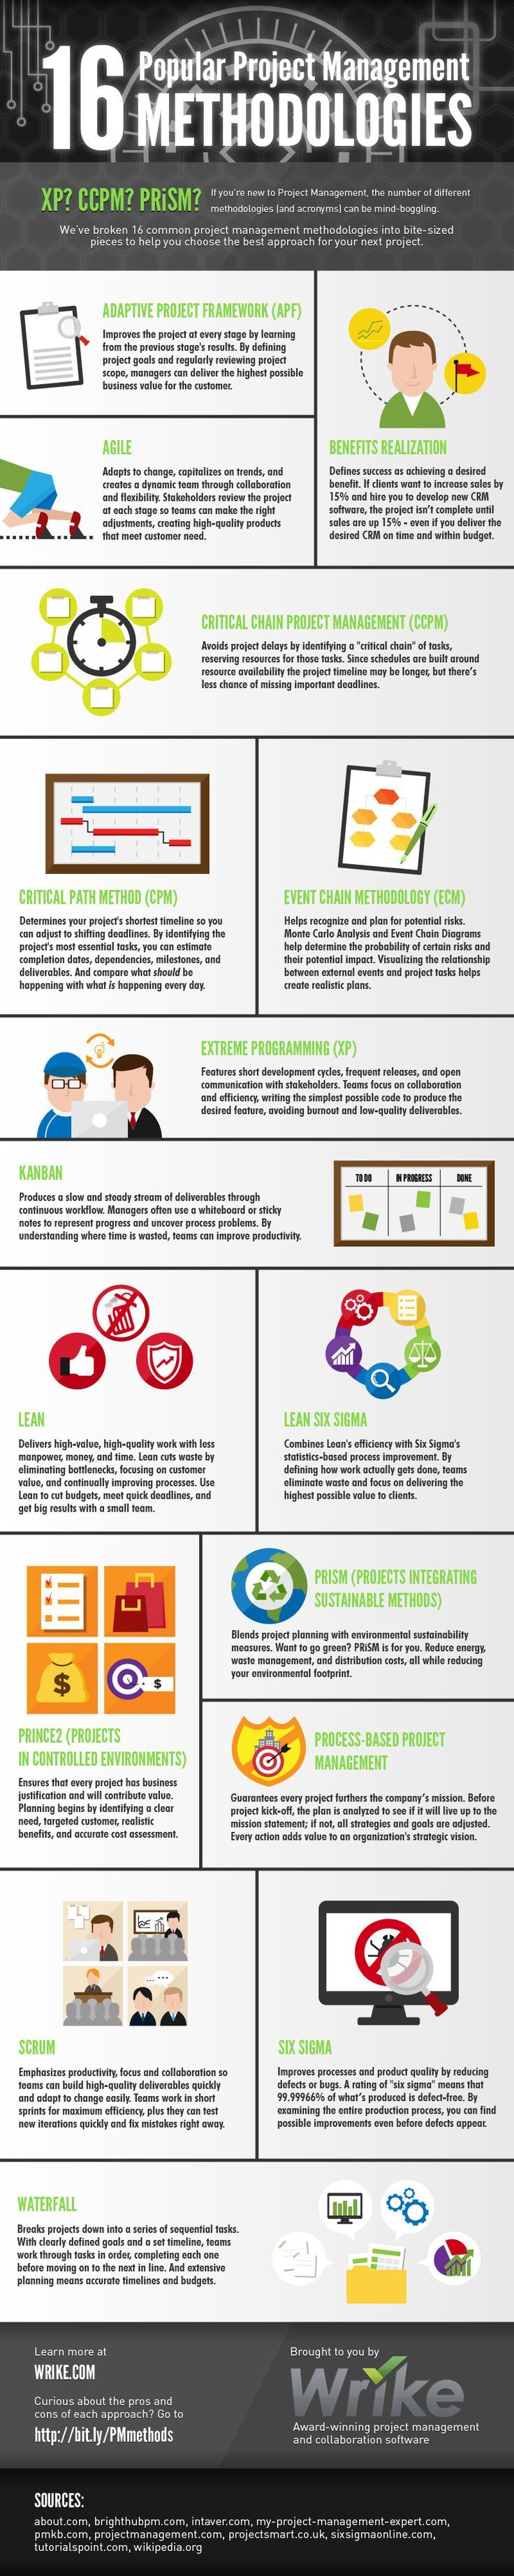 Whats at the heart of Project Management